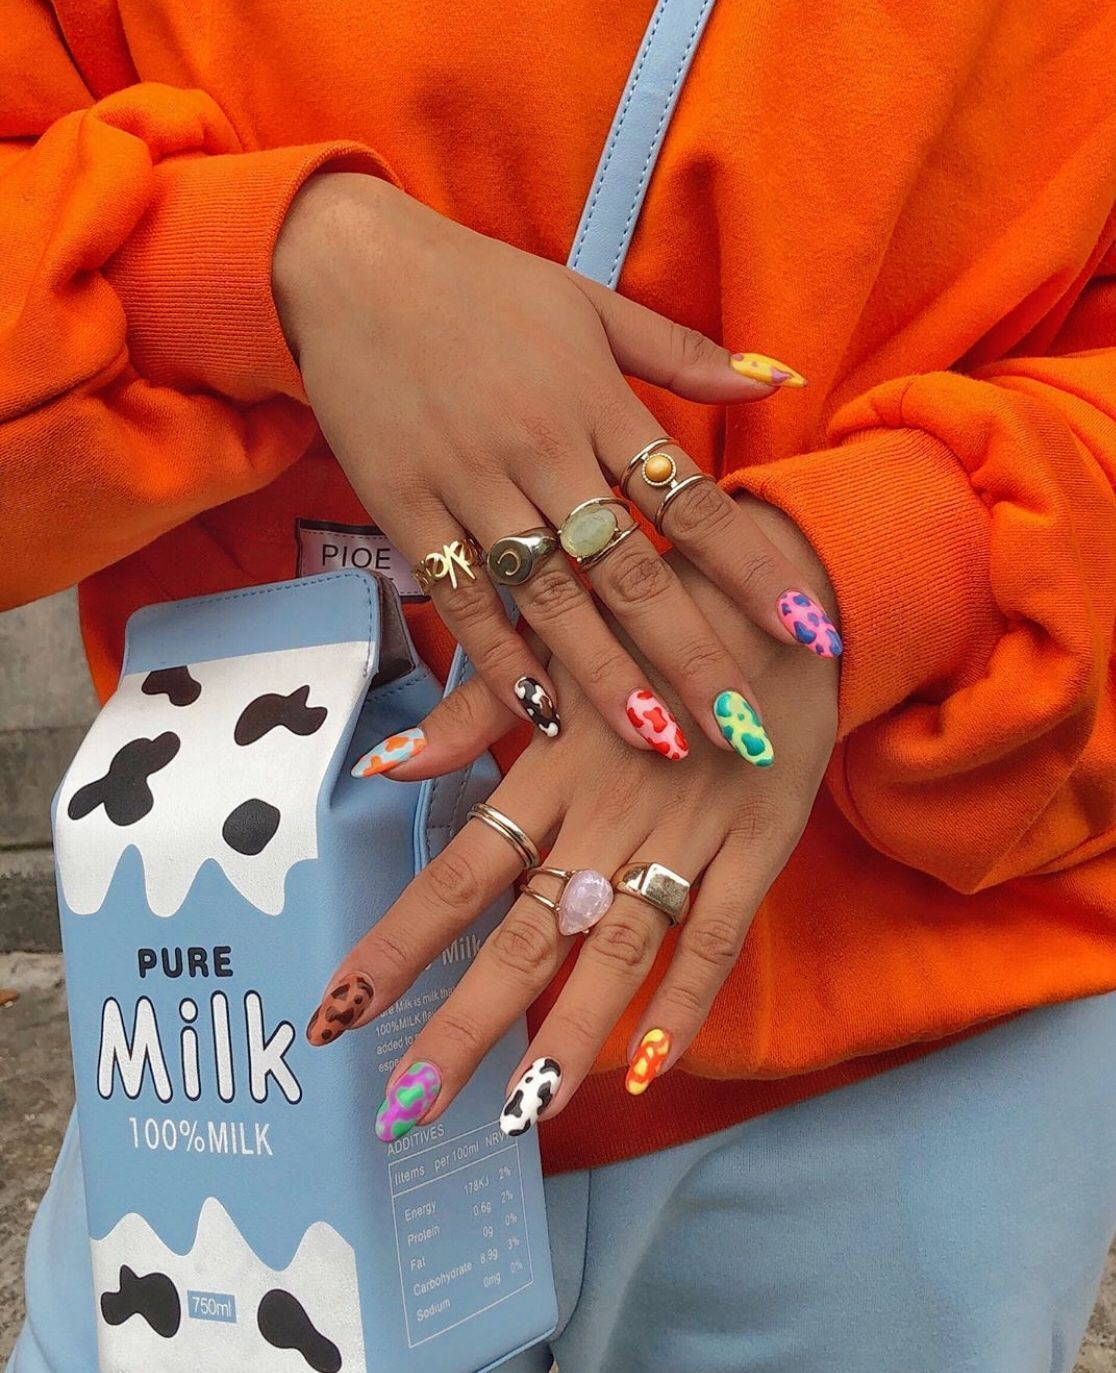 90s Aesthetic Nails In 2020 Cow Nails Aycrlic Nails Swag Nails